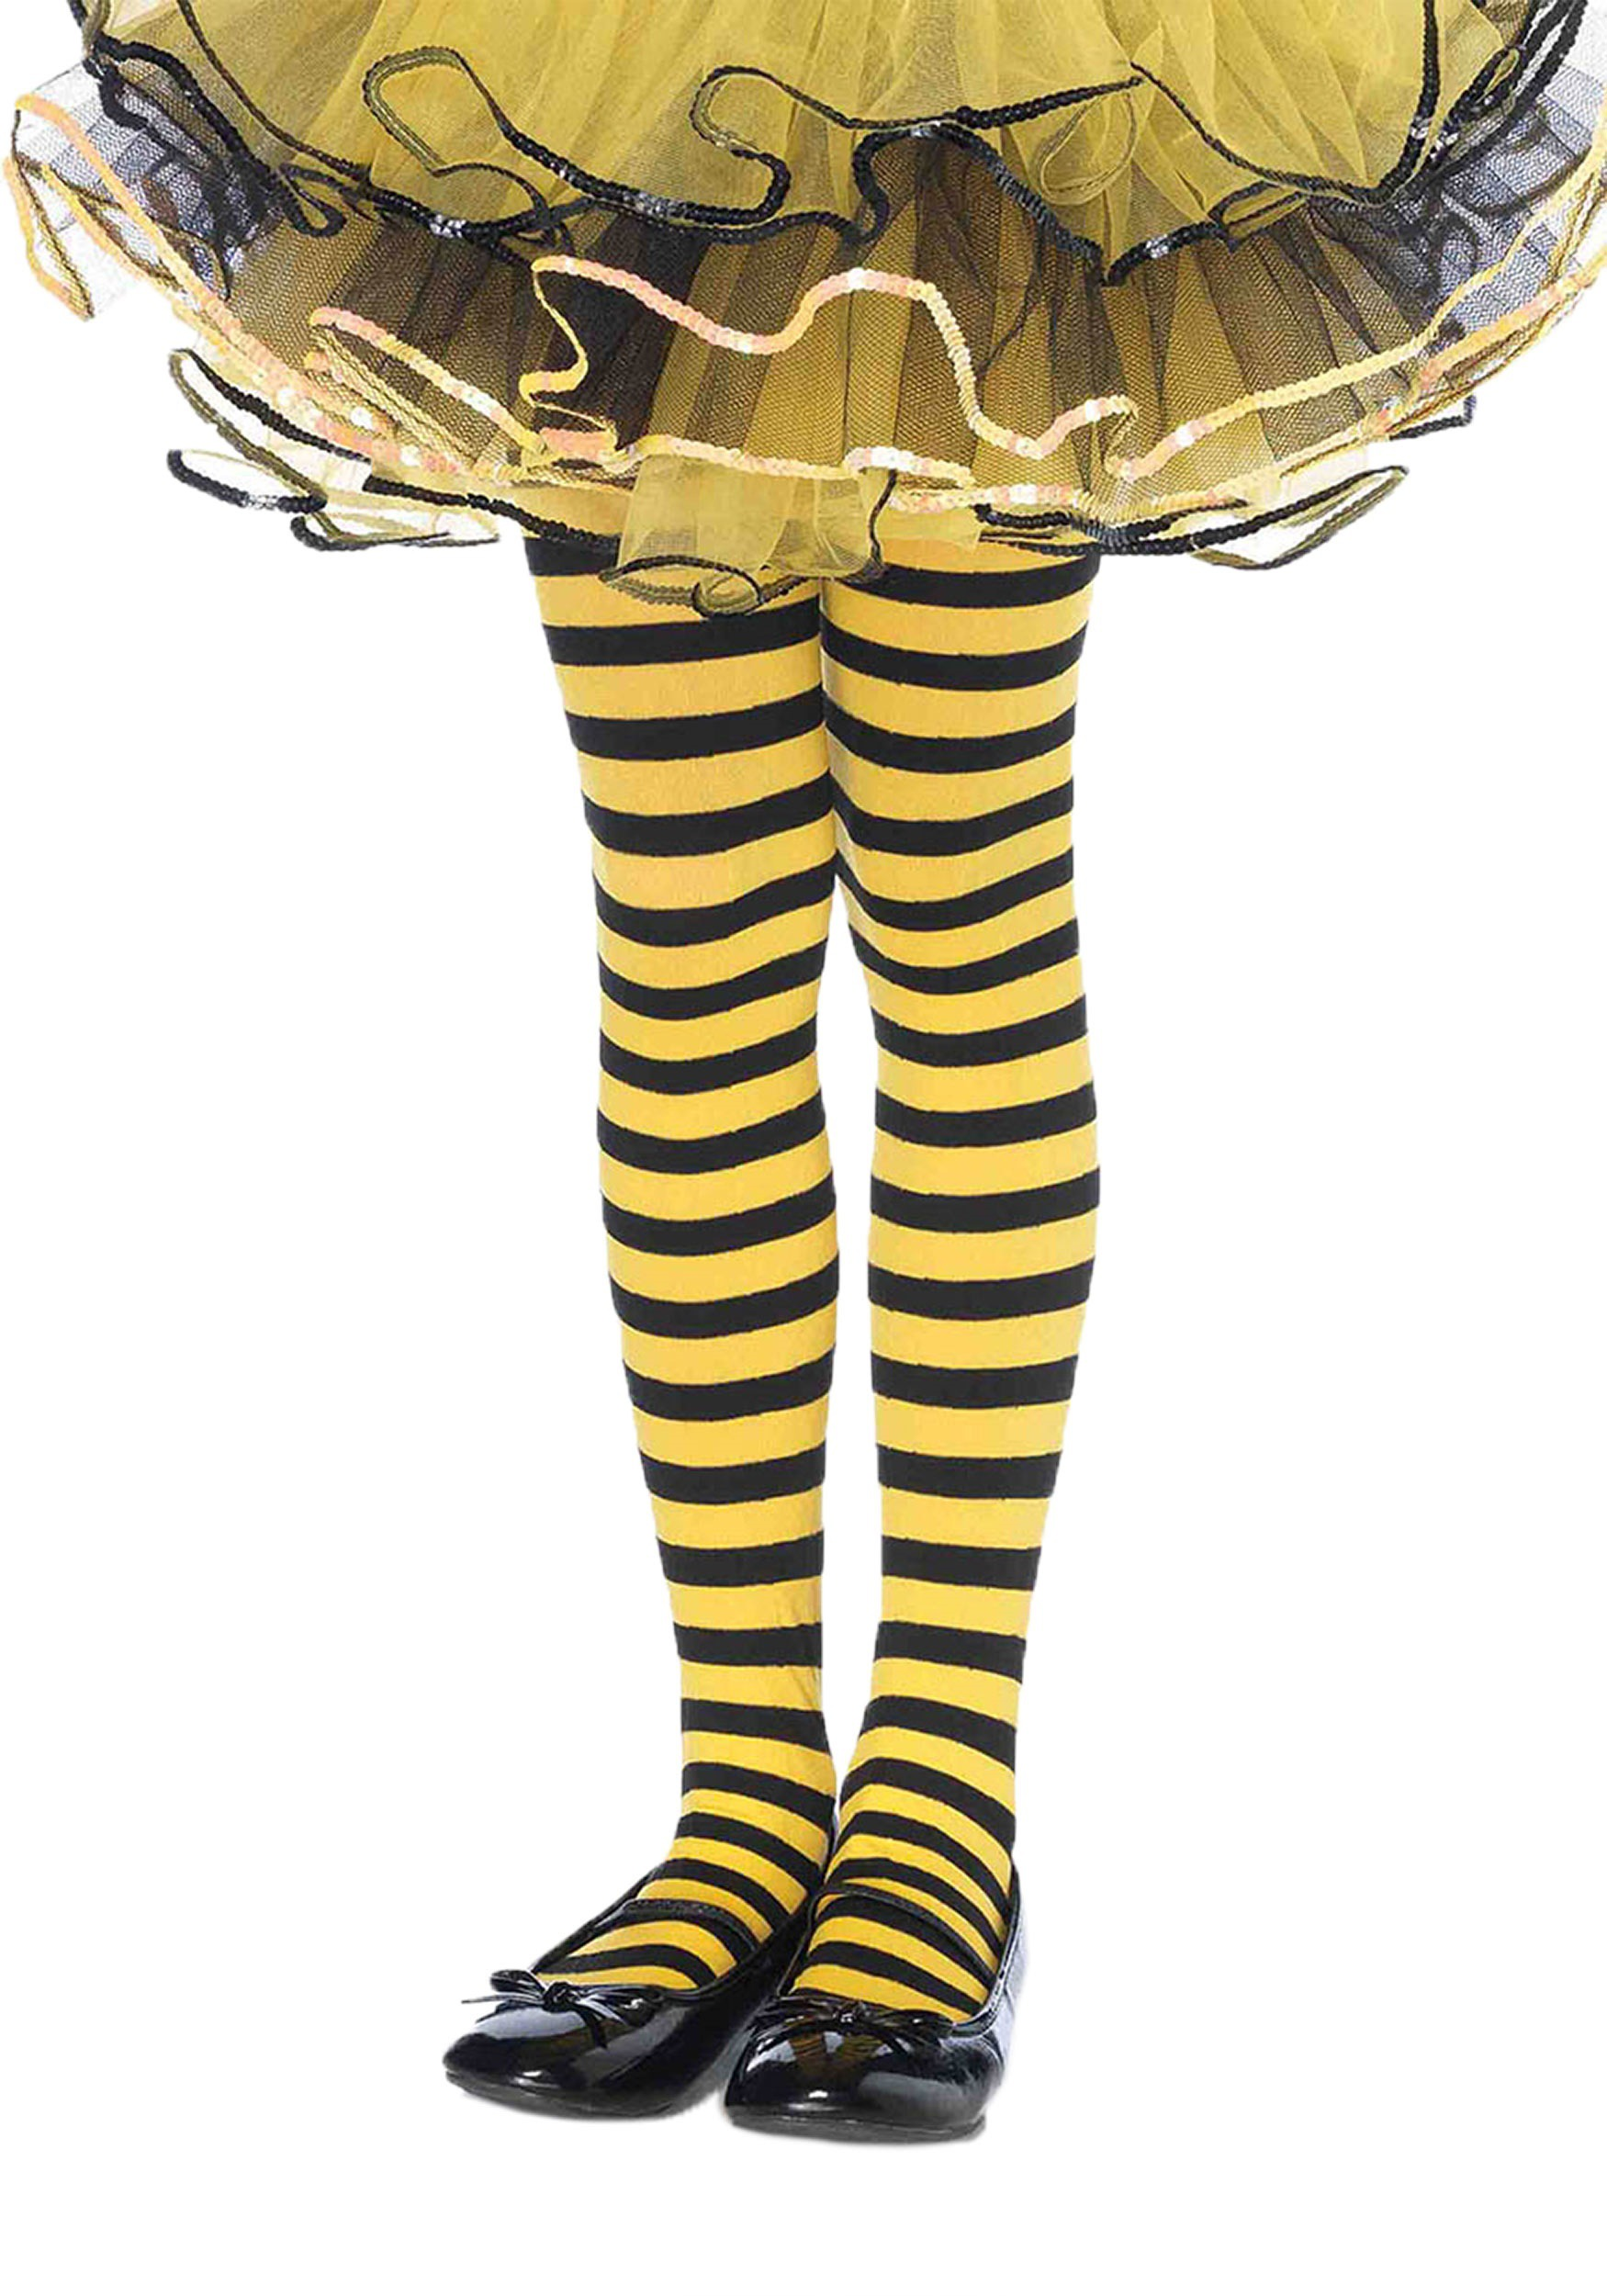 girls yellow and black tights - bee accessories for halloween